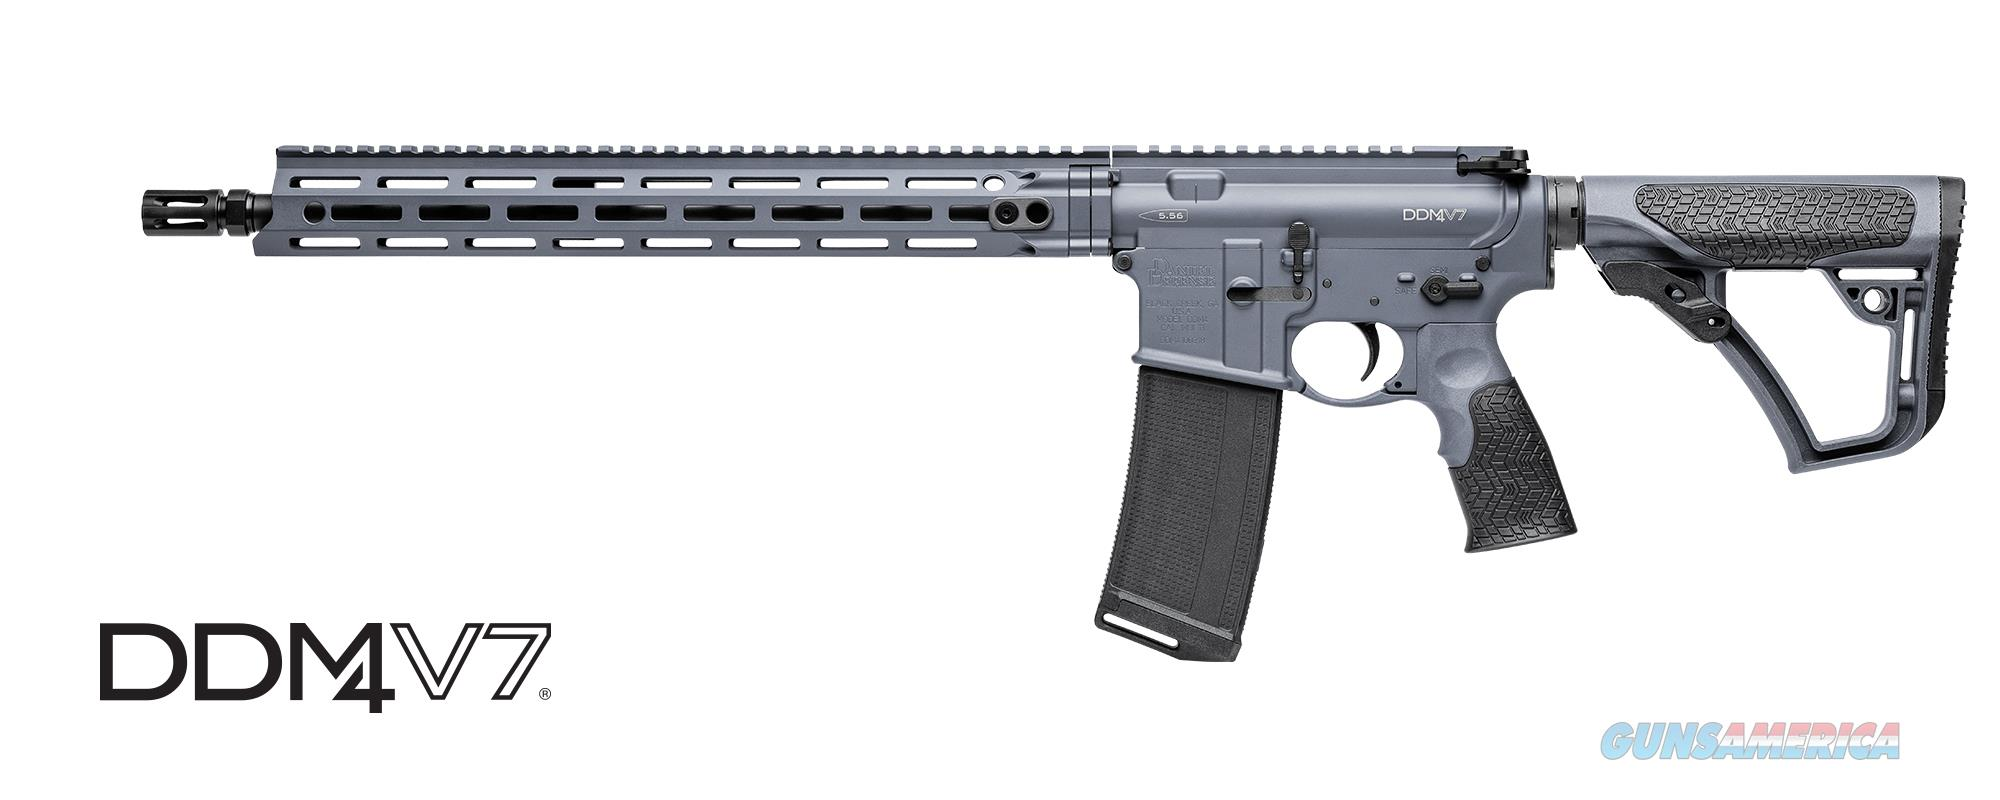 "Daniel Defense DDM4v7 Toronado 5.6 NATO 16"" 02-128-13042-047   Guns > Rifles > Daniel Defense > Complete Rifles"